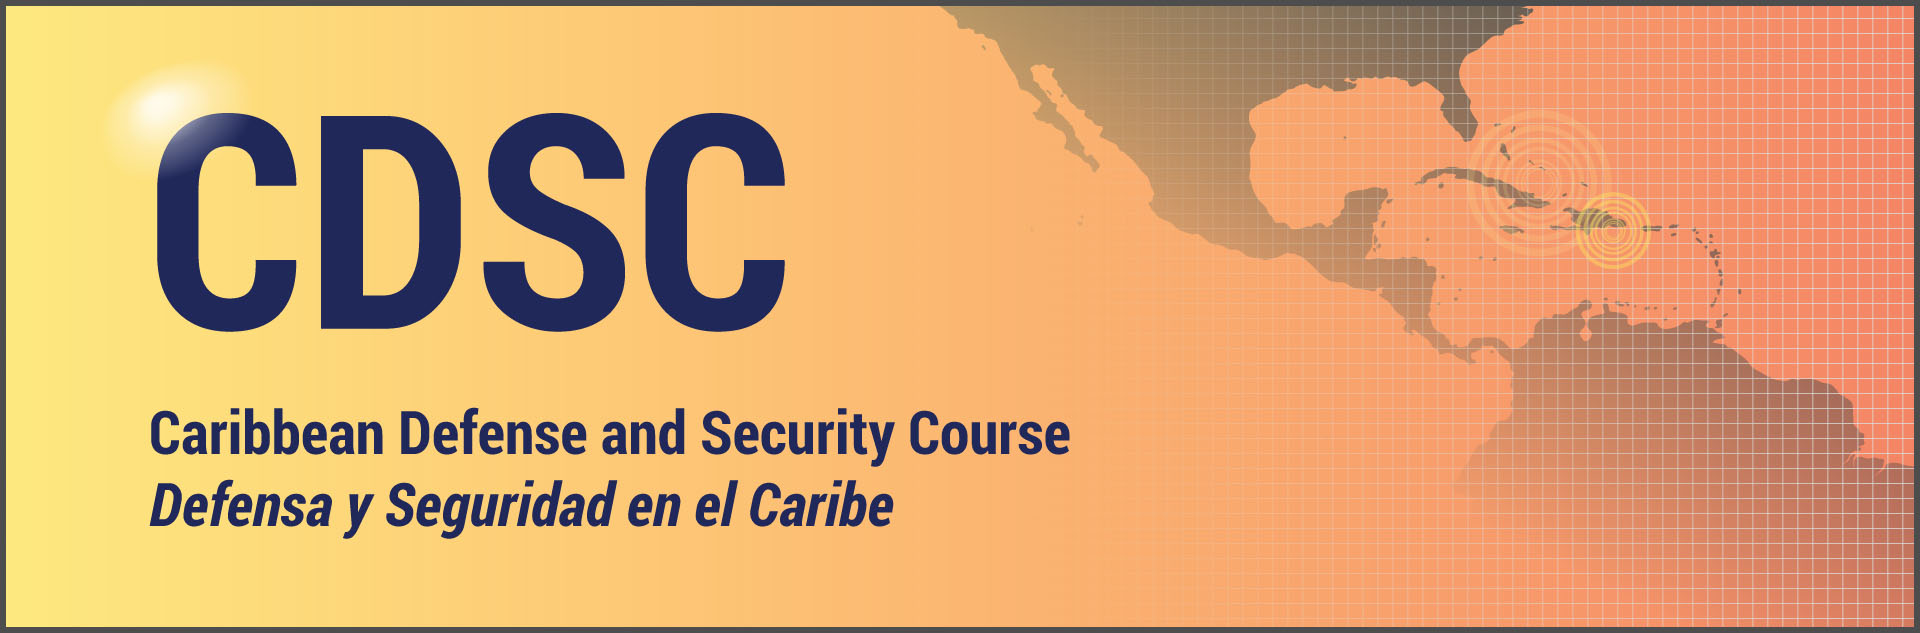 Caribbean Defense and Security Course (CDSC)